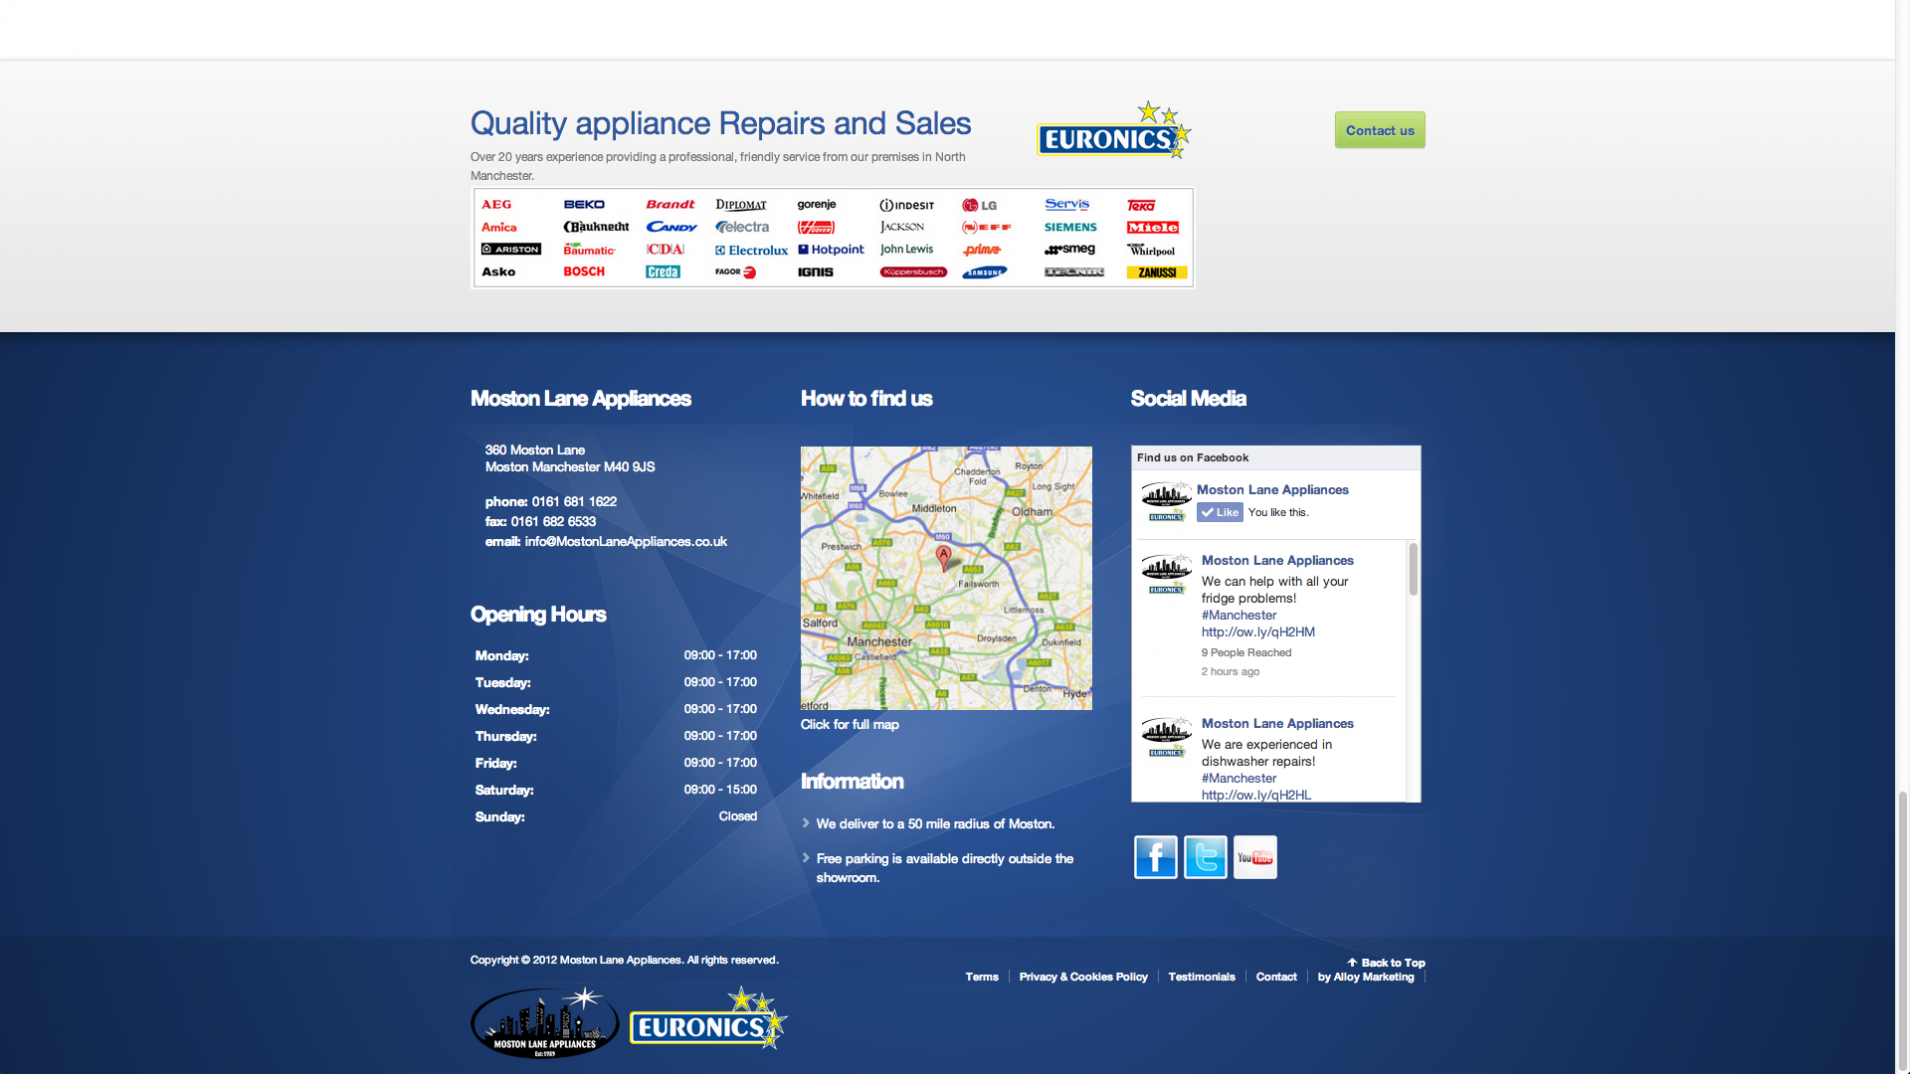 Screen Shot 2013 12 23 at 16.31.08 - Webdesign for appliance repairs company